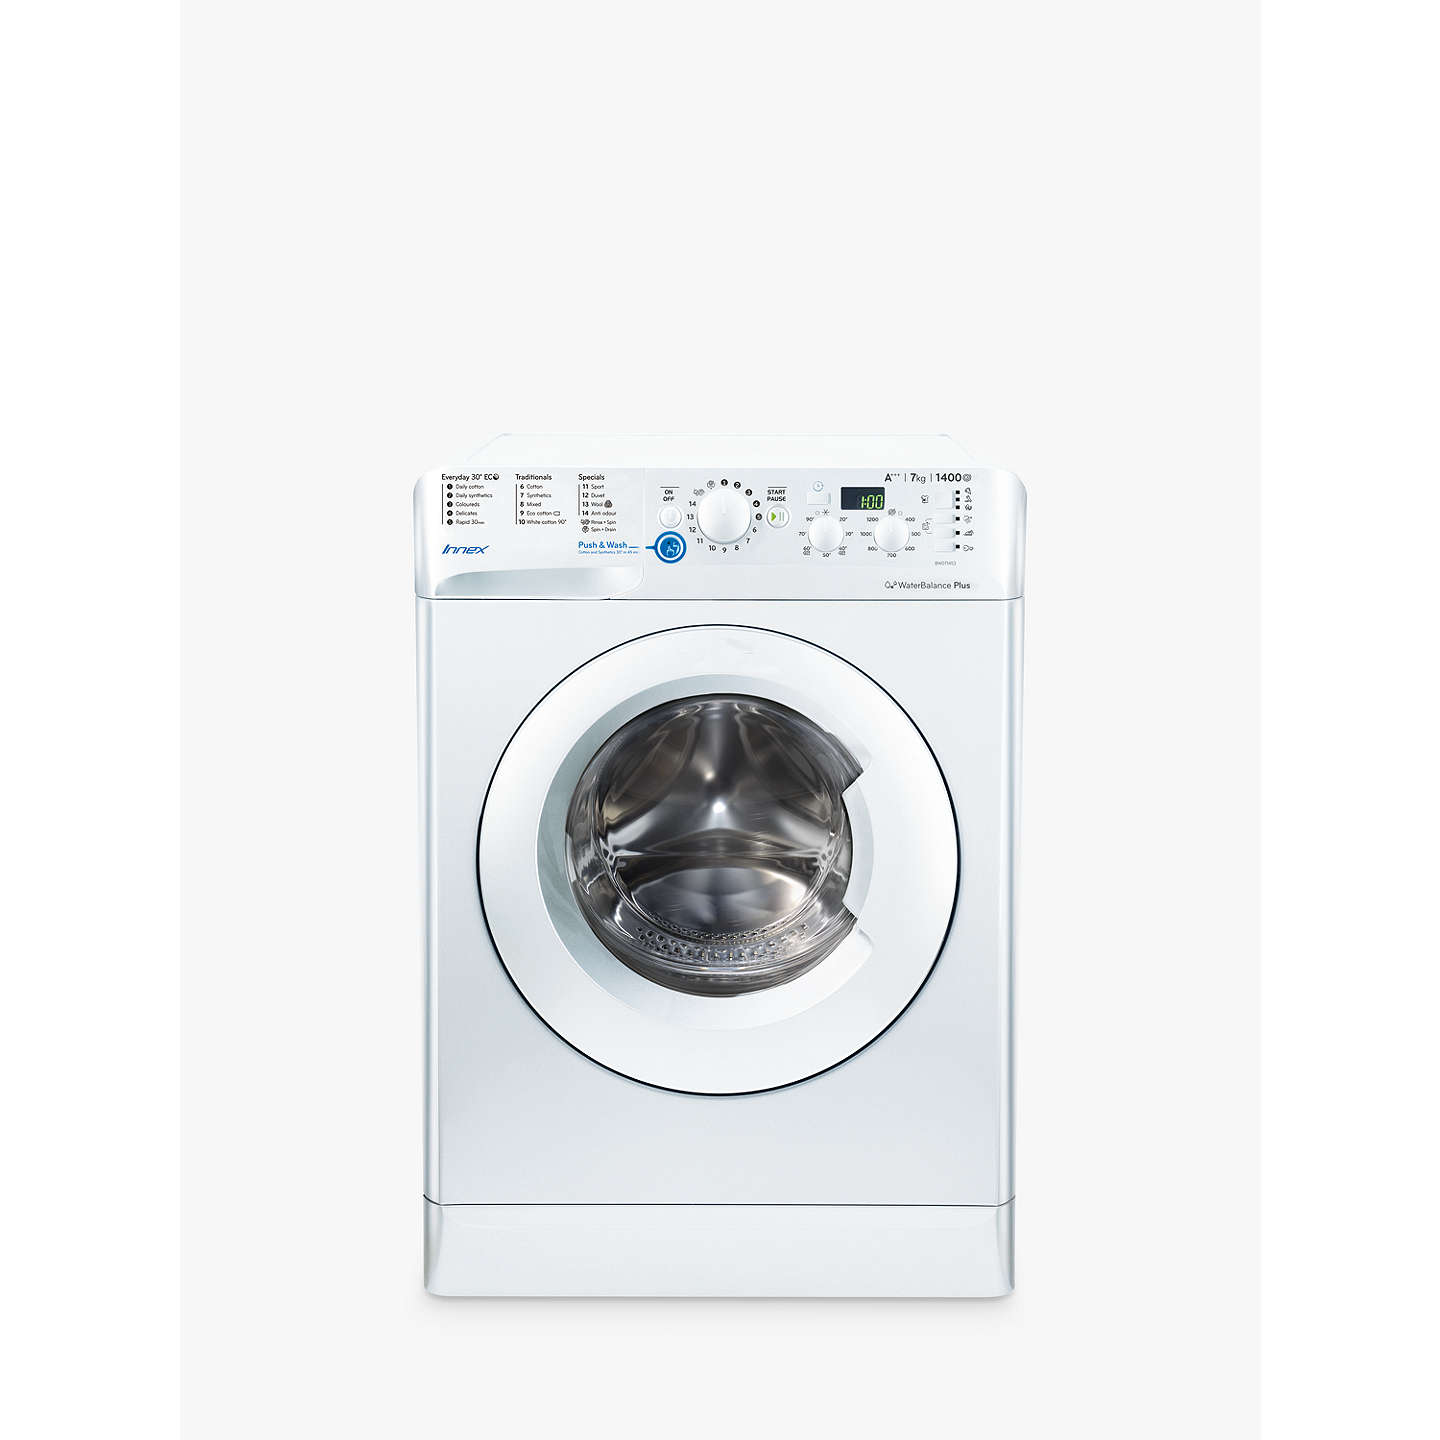 Indesit innex bwd71453wuk freestanding washing machine 7kg load a buyindesit innex bwd71453wuk freestanding washing machine 7kg load a energy rating 1400rpm white buycottarizona Choice Image